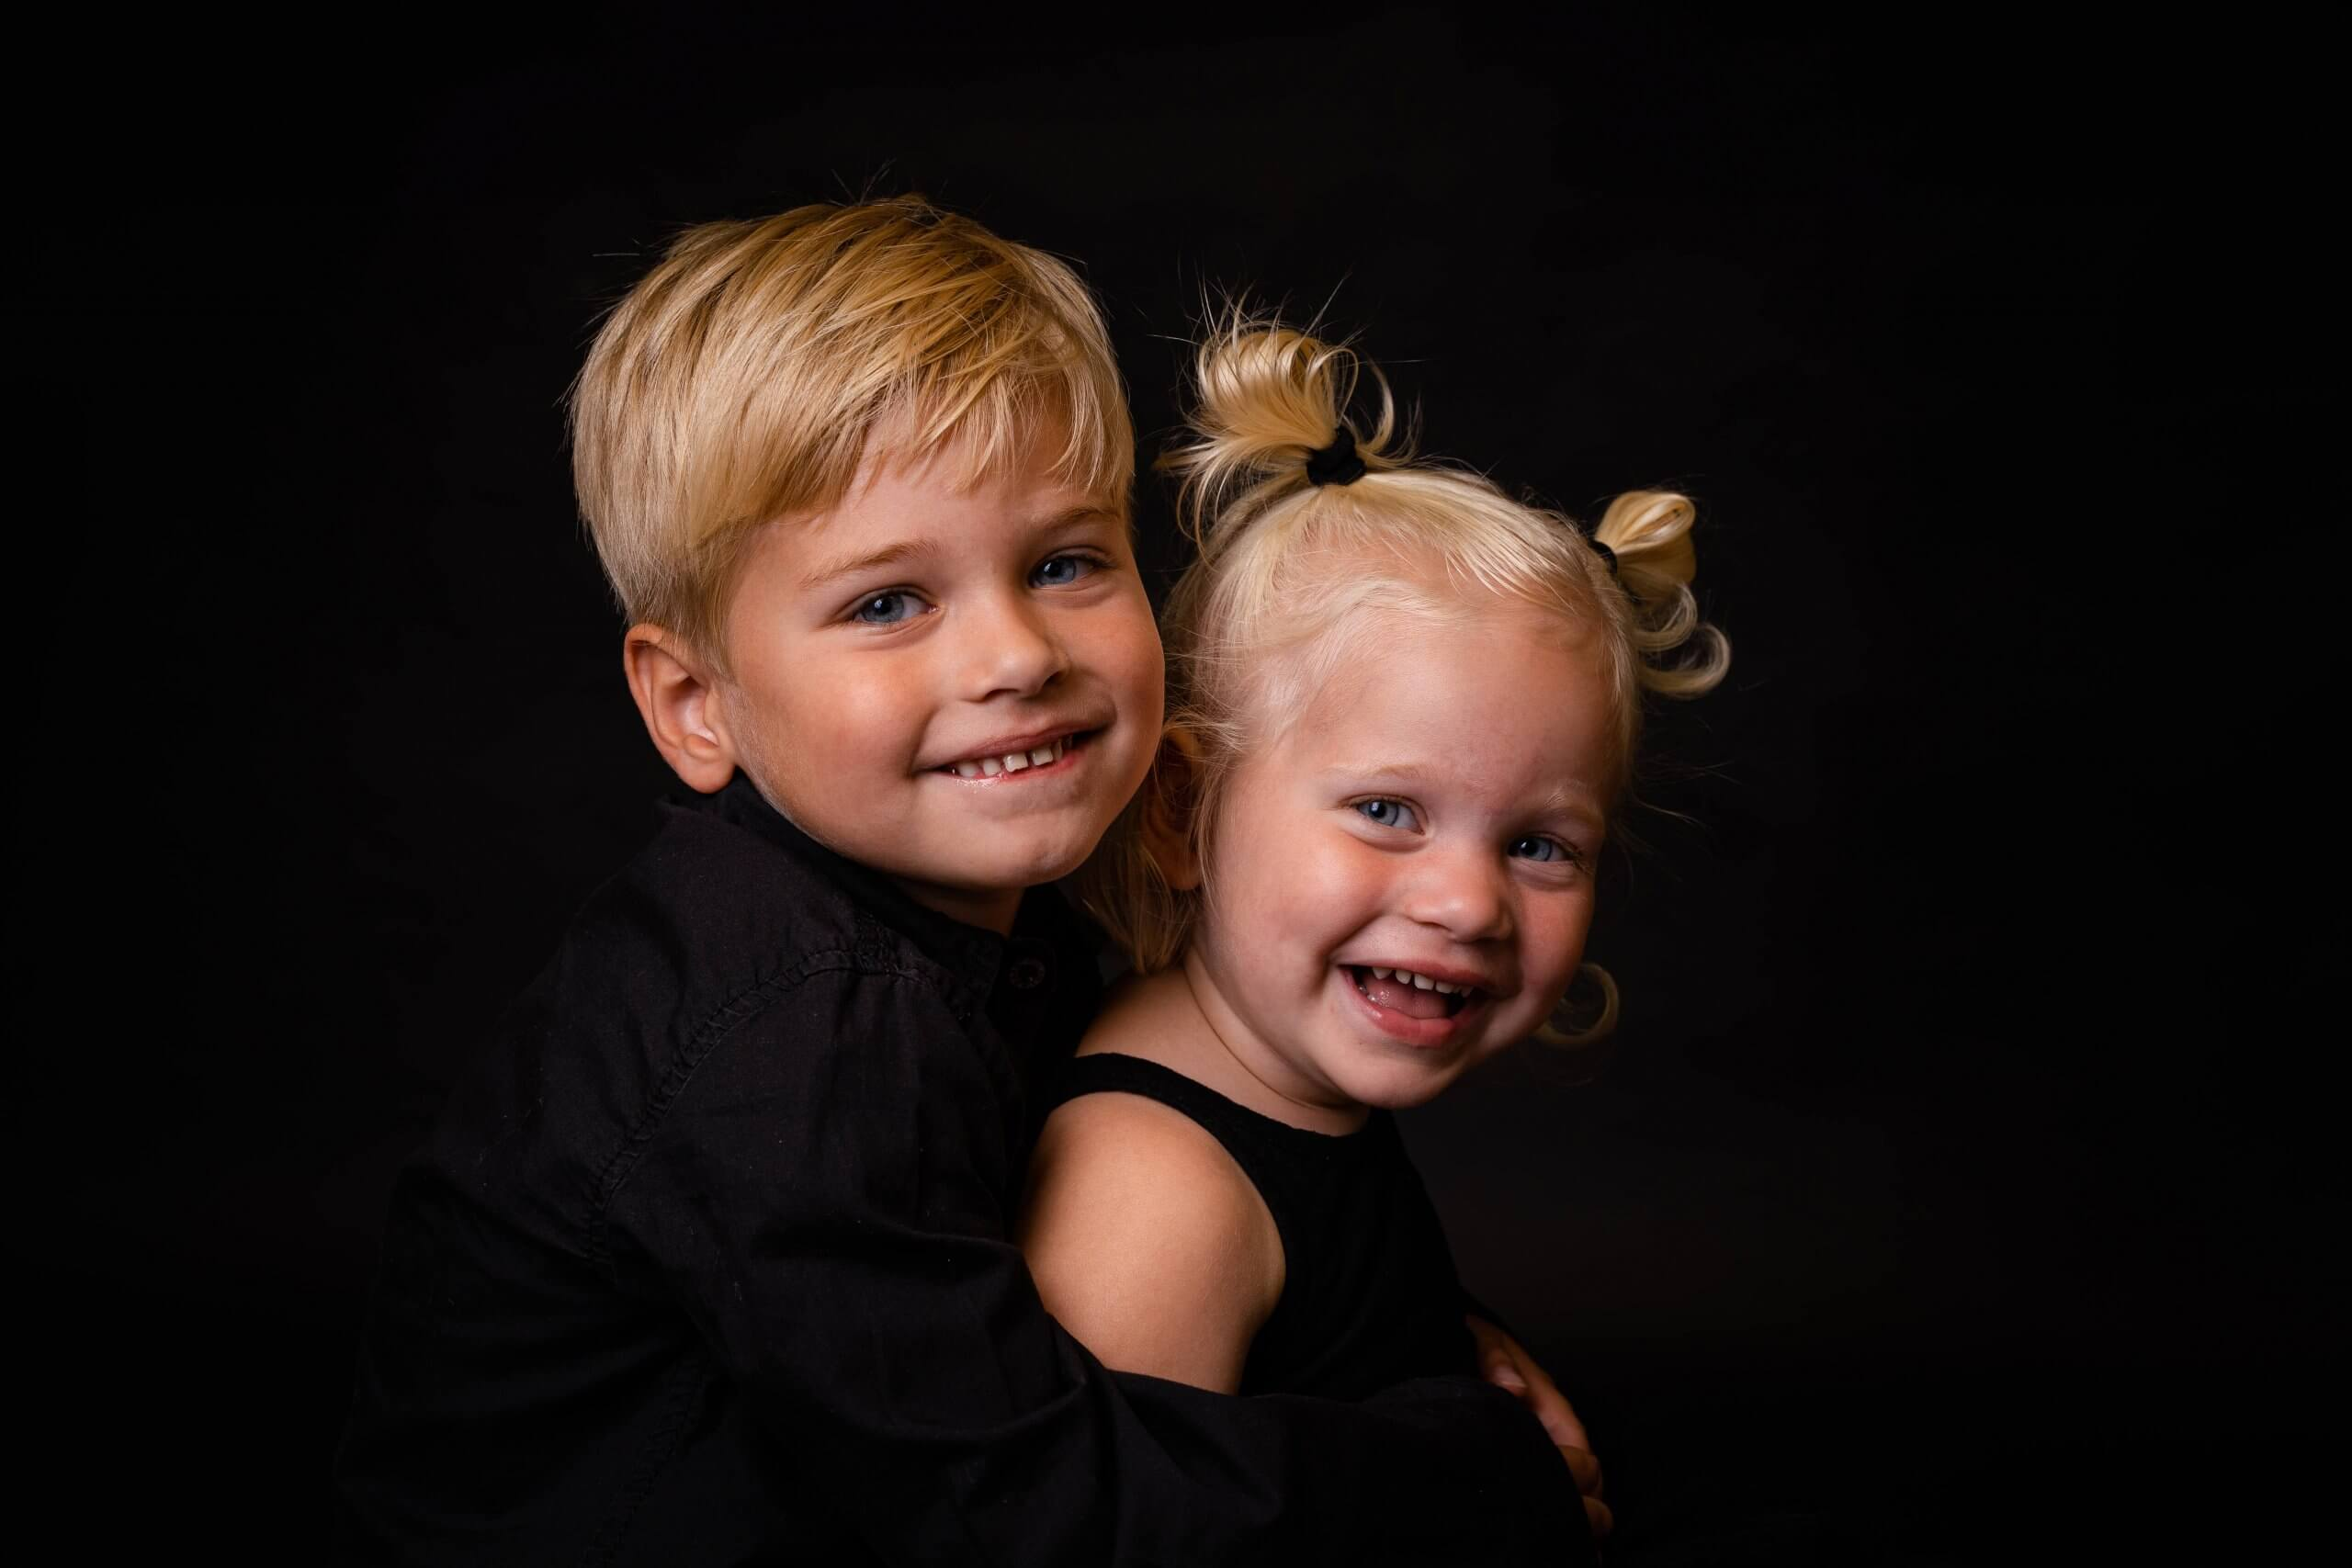 Familie kids broer en zus siblings studio